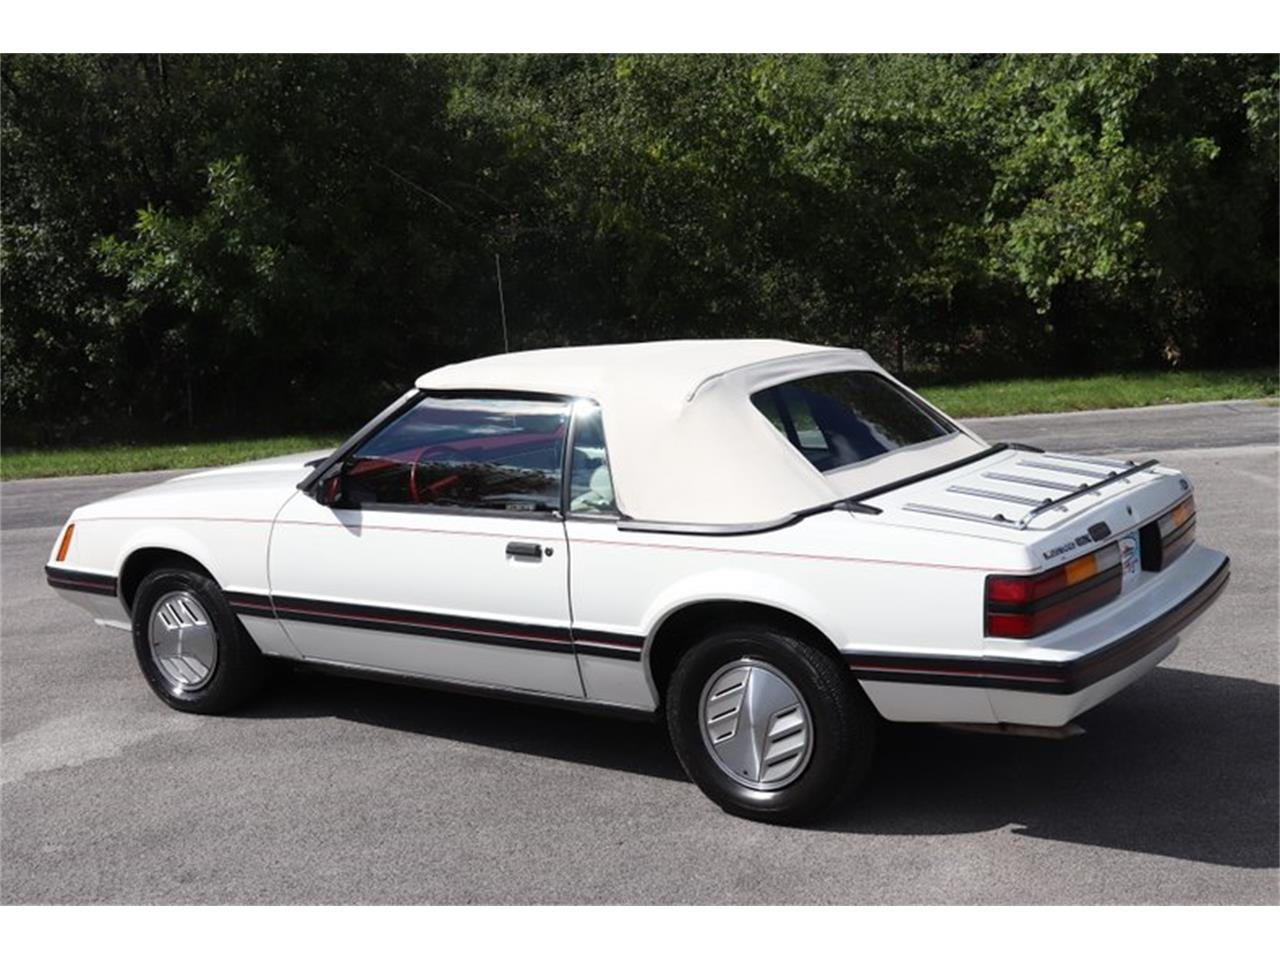 Large Picture of '83 Mustang located in Alsip Illinois - $7,900.00 - OHLI